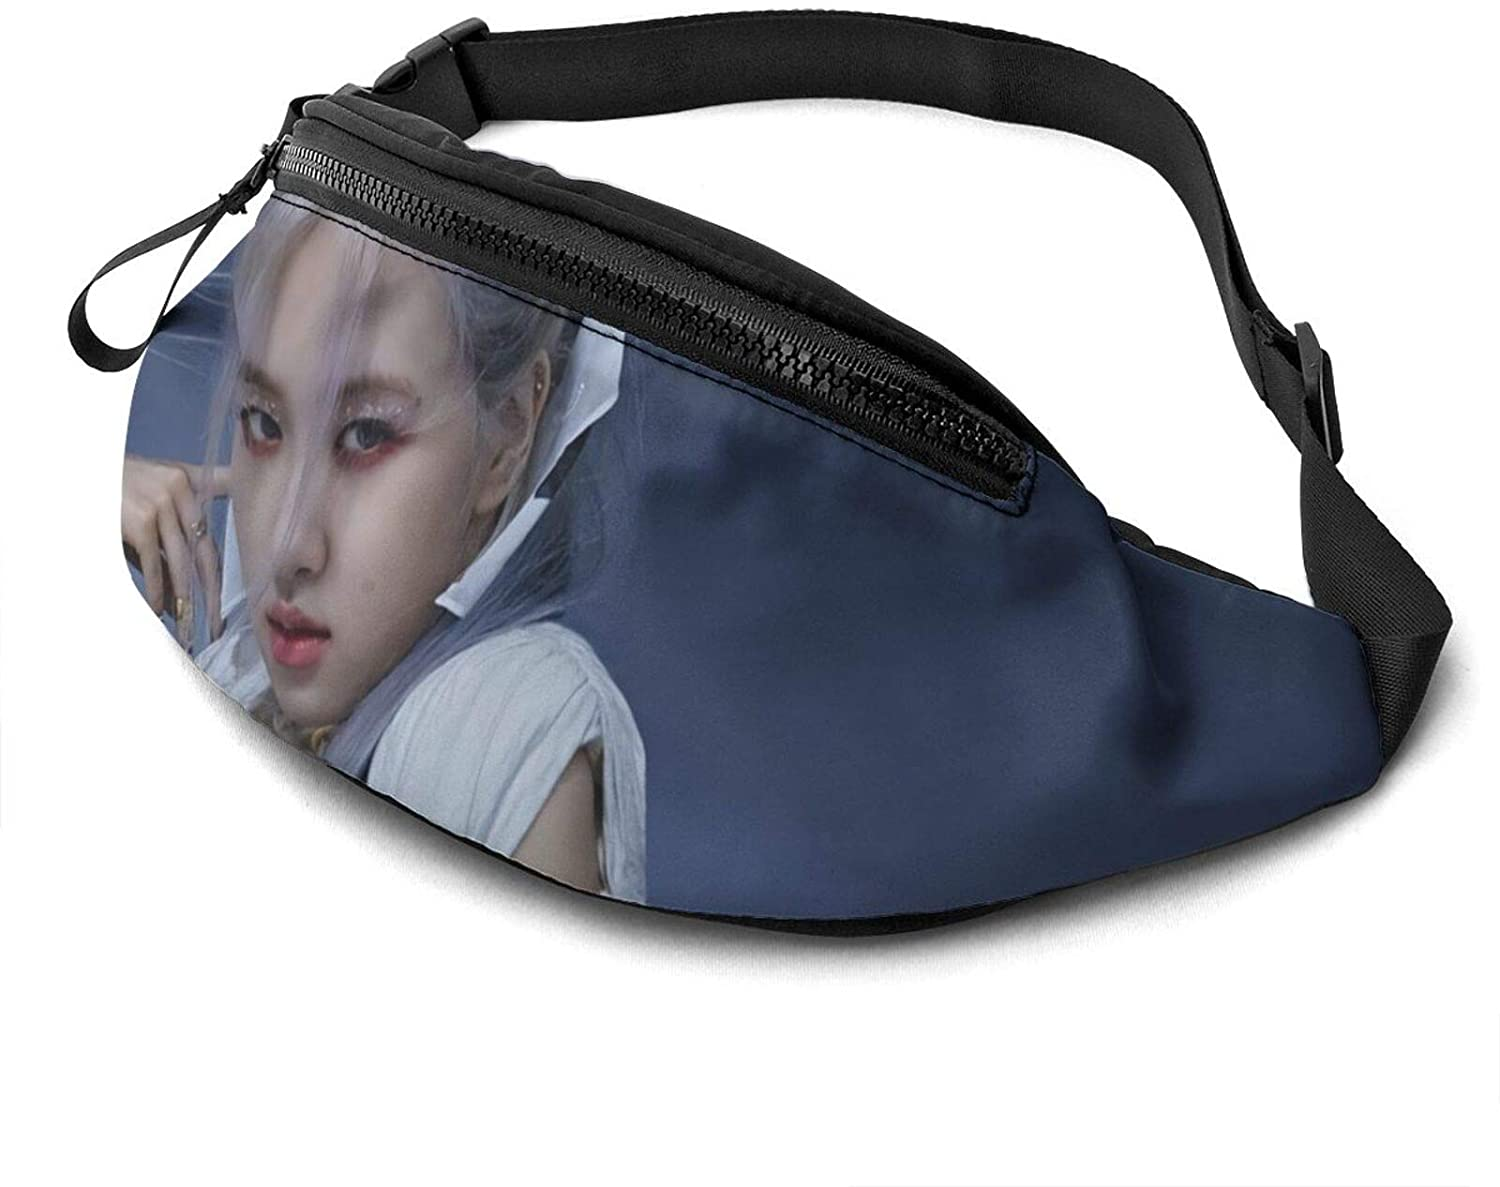 Atsh Blackpink Waist Pack Bag Fanny Pack for Men Women Hip Bum Bag with Adjustable Strap Fashionable and Convenient